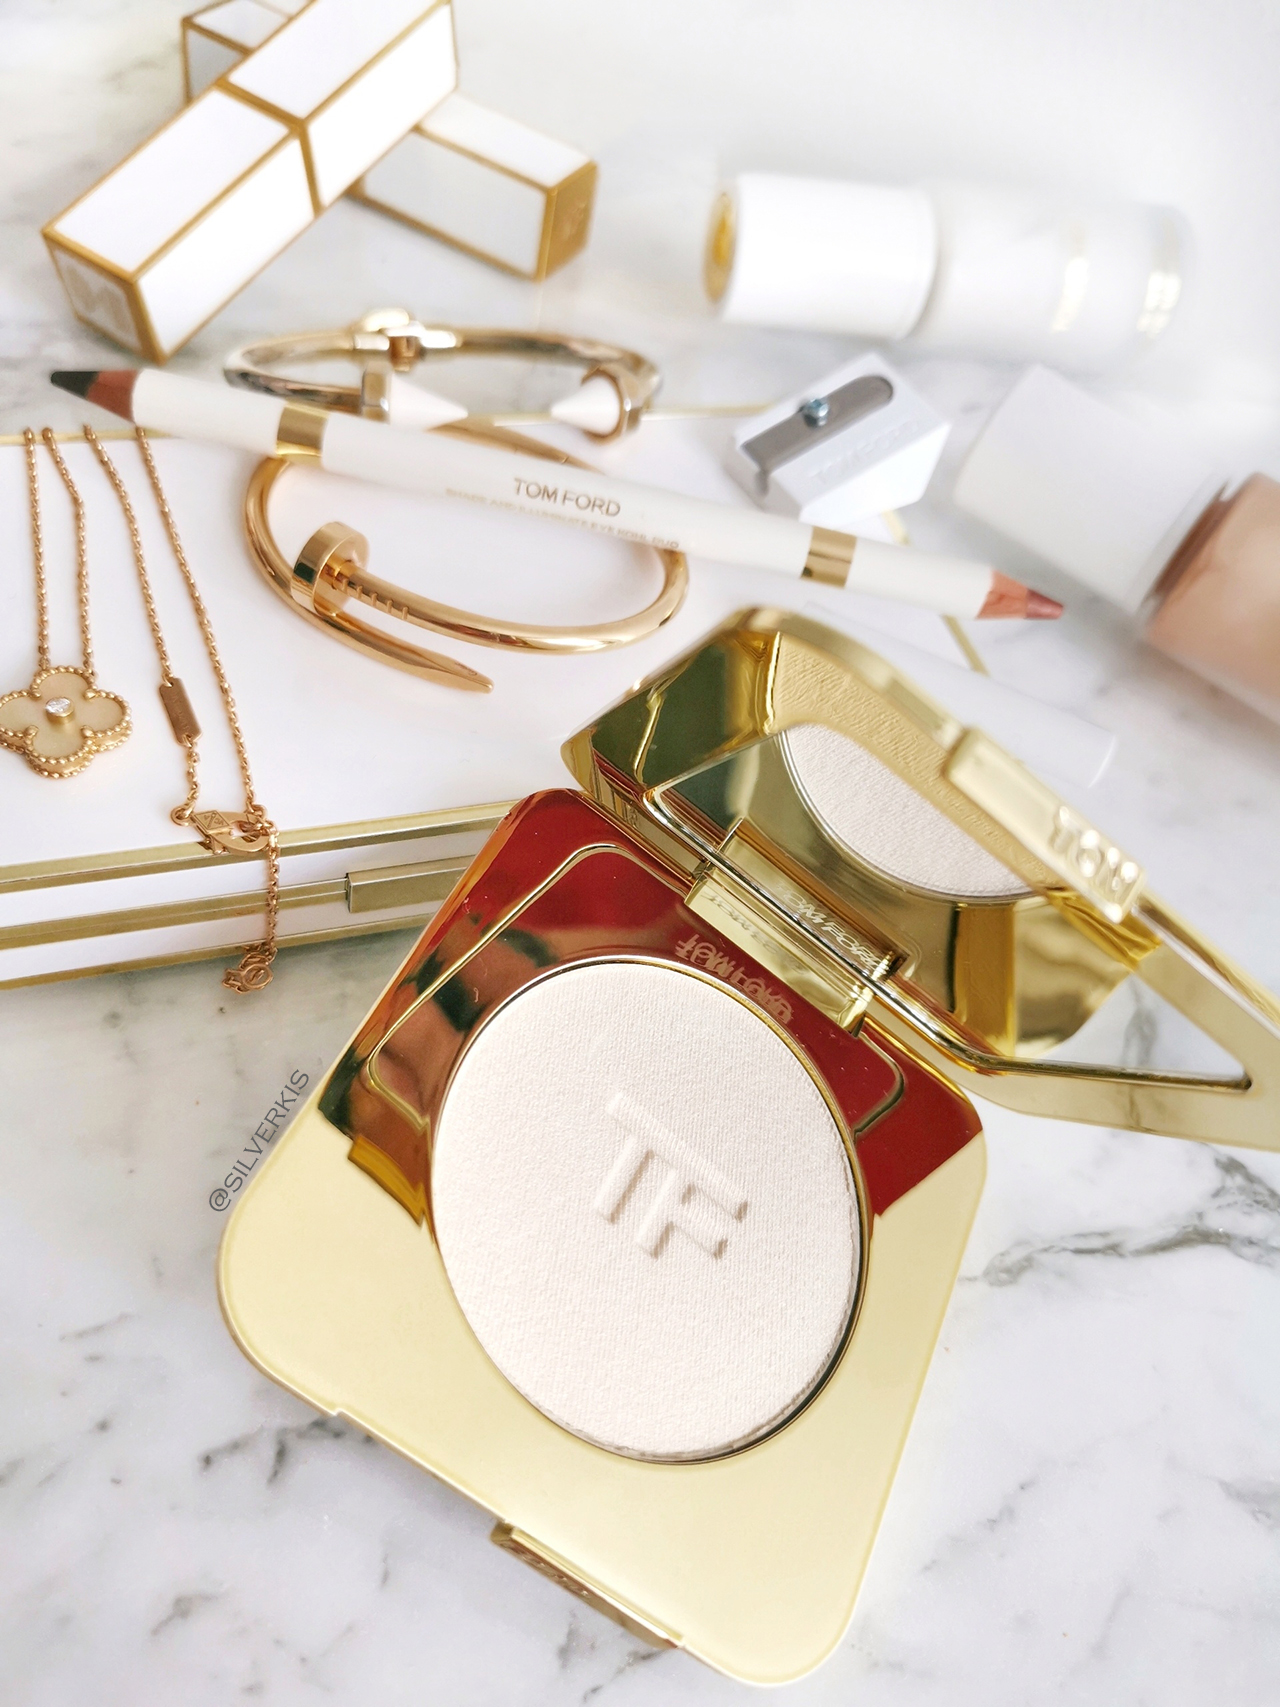 Tom Ford Gilt Glow Radiant Perfecting Powder